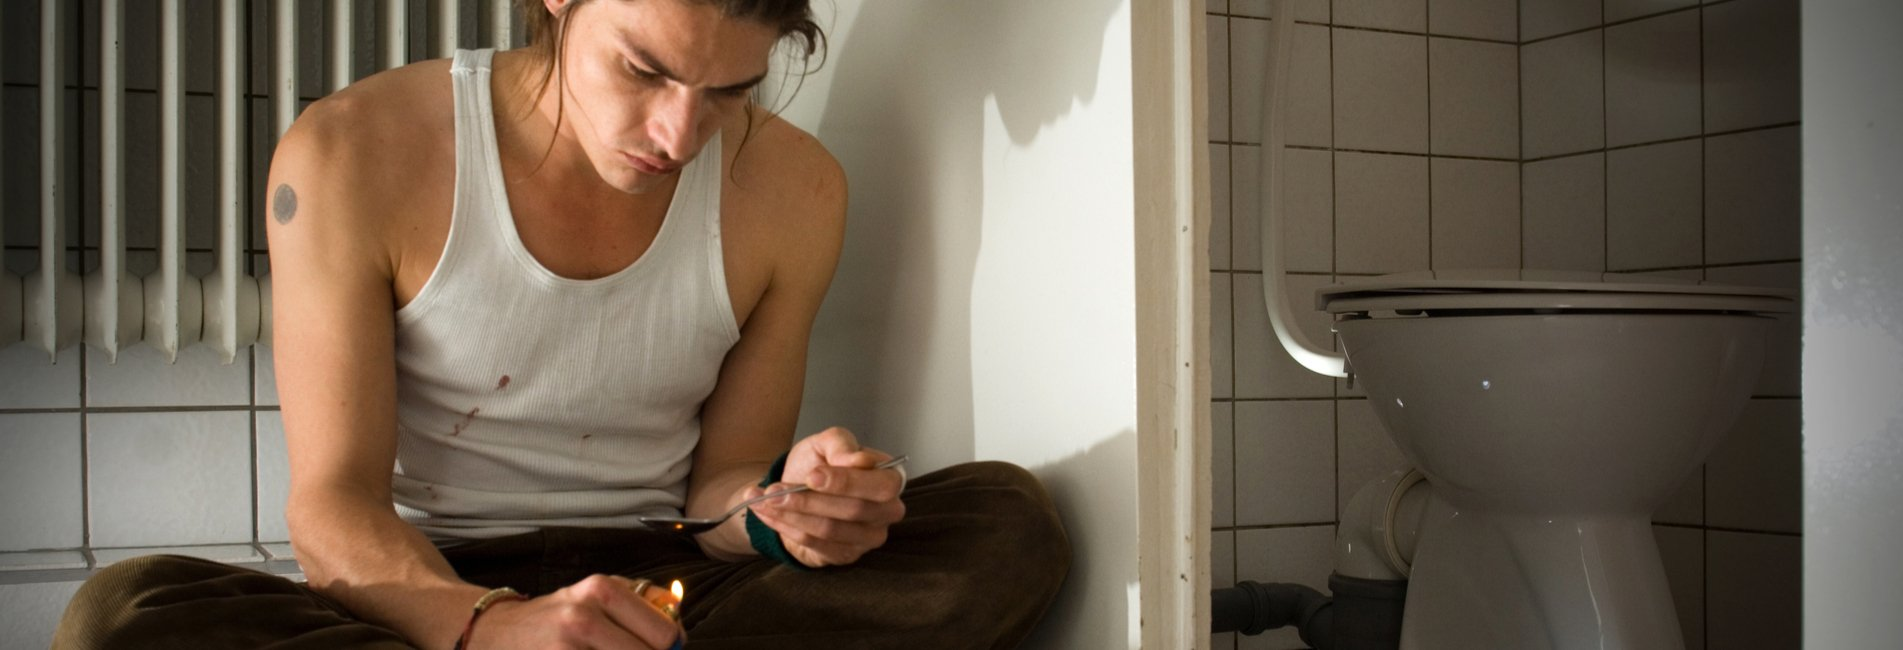 Heroin Addiction What to Watch For Resurgence – Heroin use can be deadly, but if you know how to tell someone is on heroin, it becomes easier to help them.